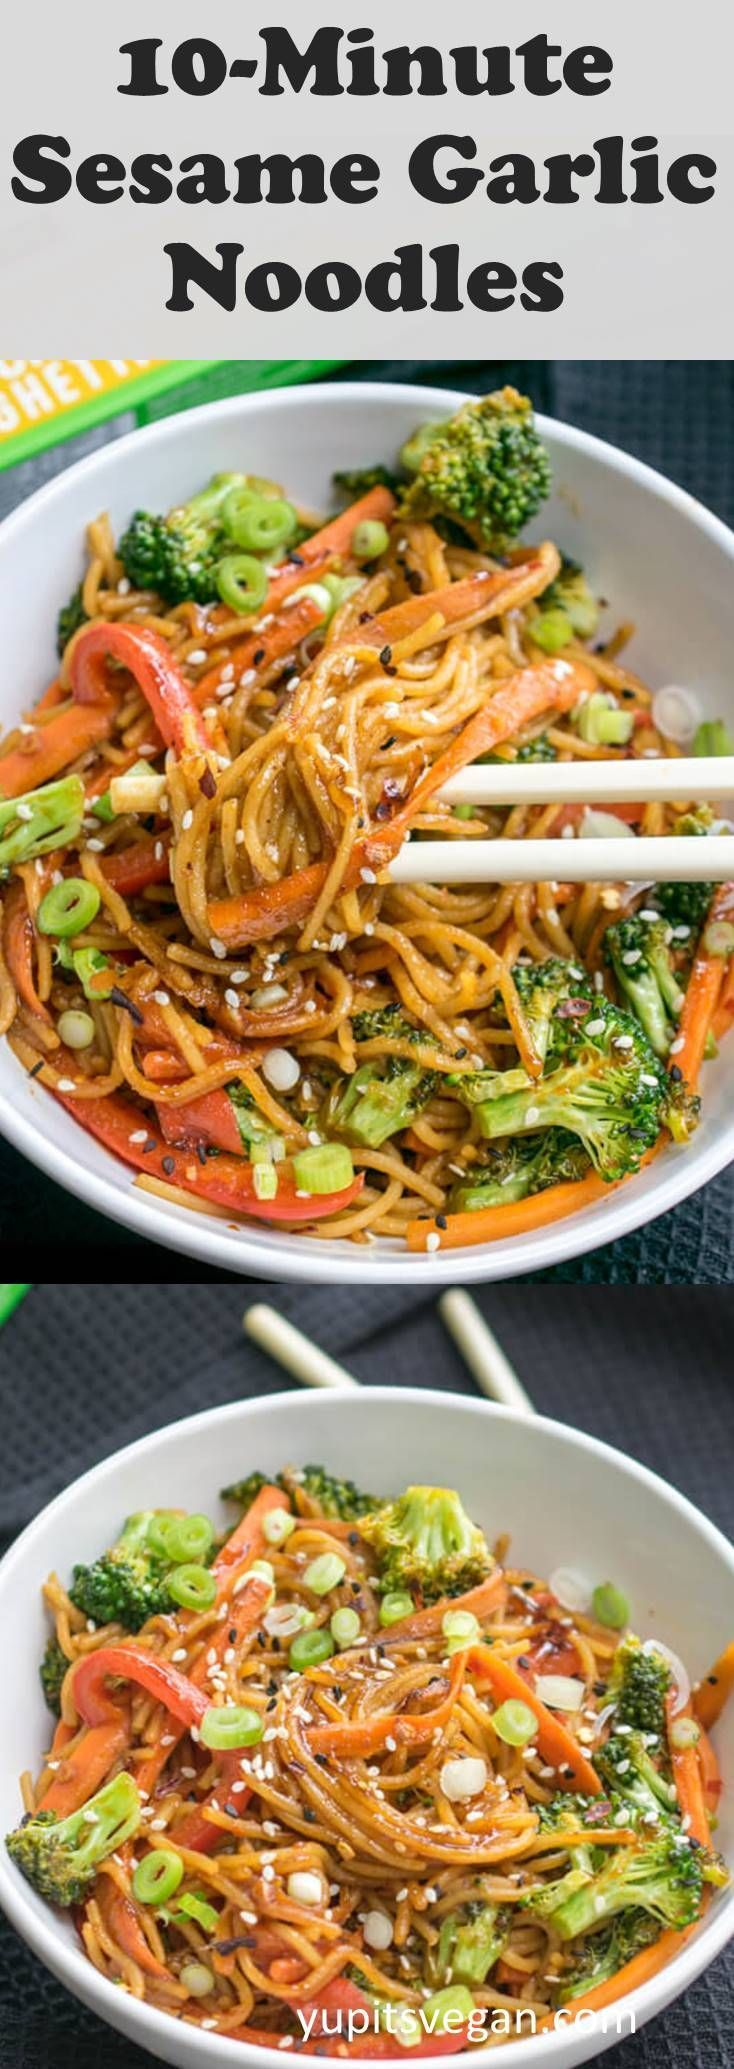 10 minutes of sesame and garlic protein noodles! Vegan, gluten-free, ready in ... - Diet tips